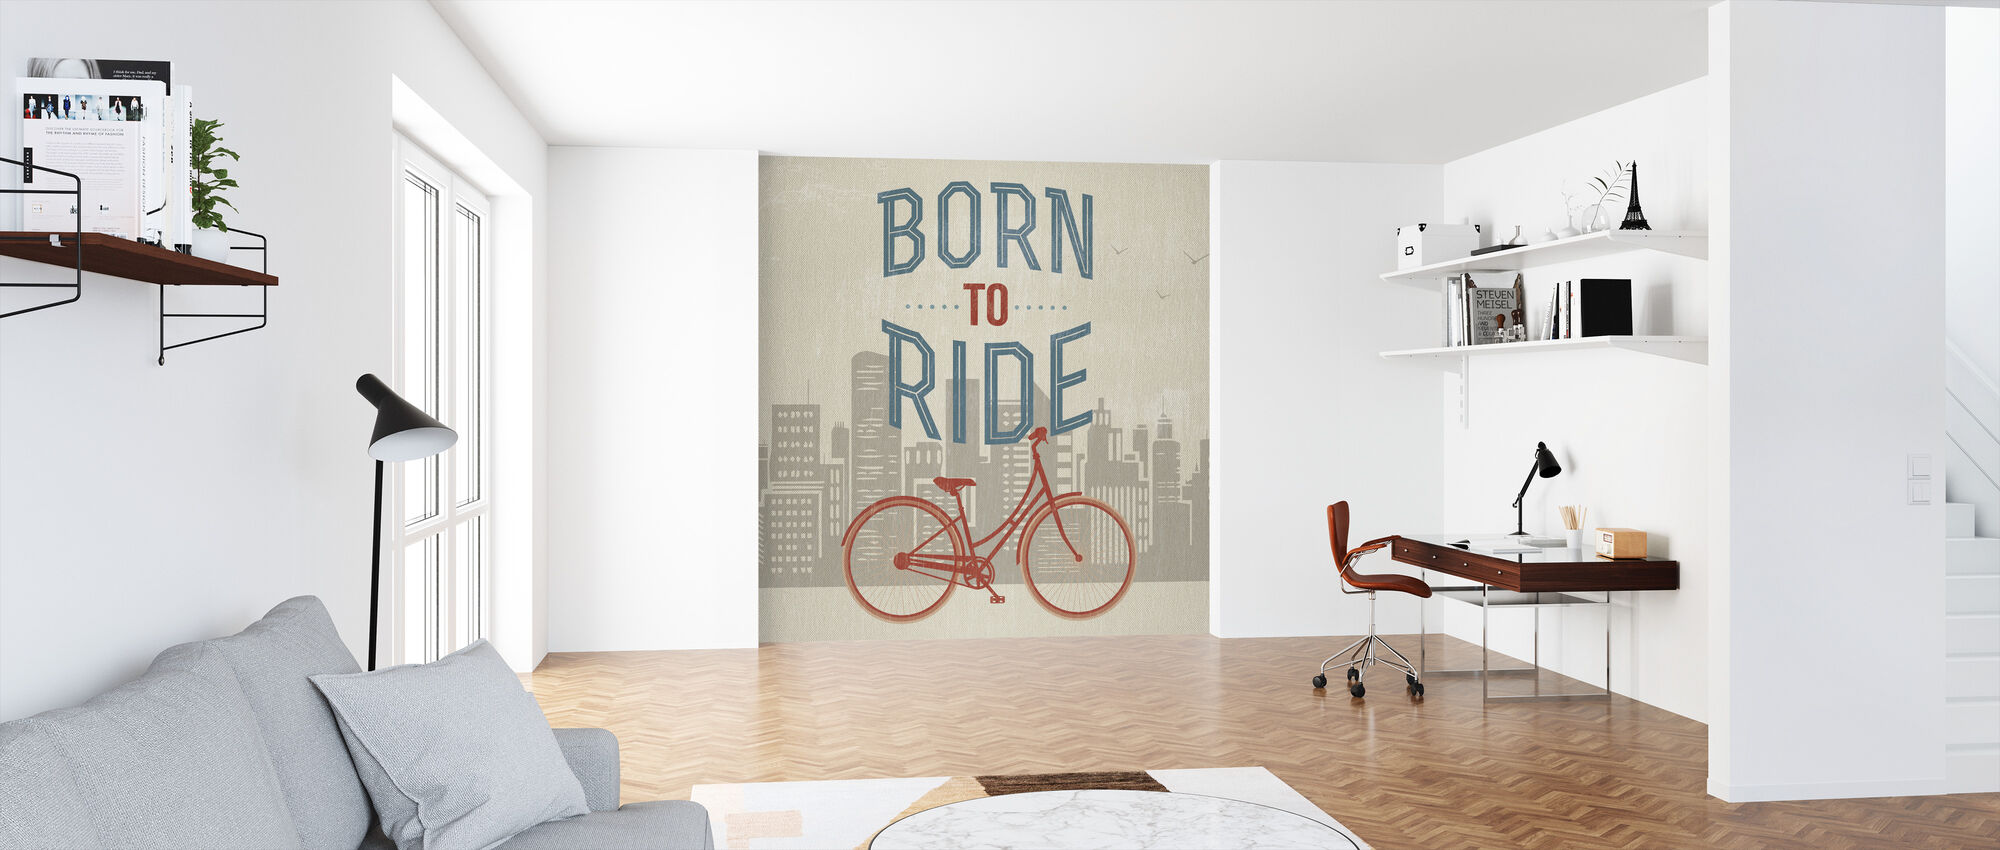 Born to Ride - Wallpaper - Office